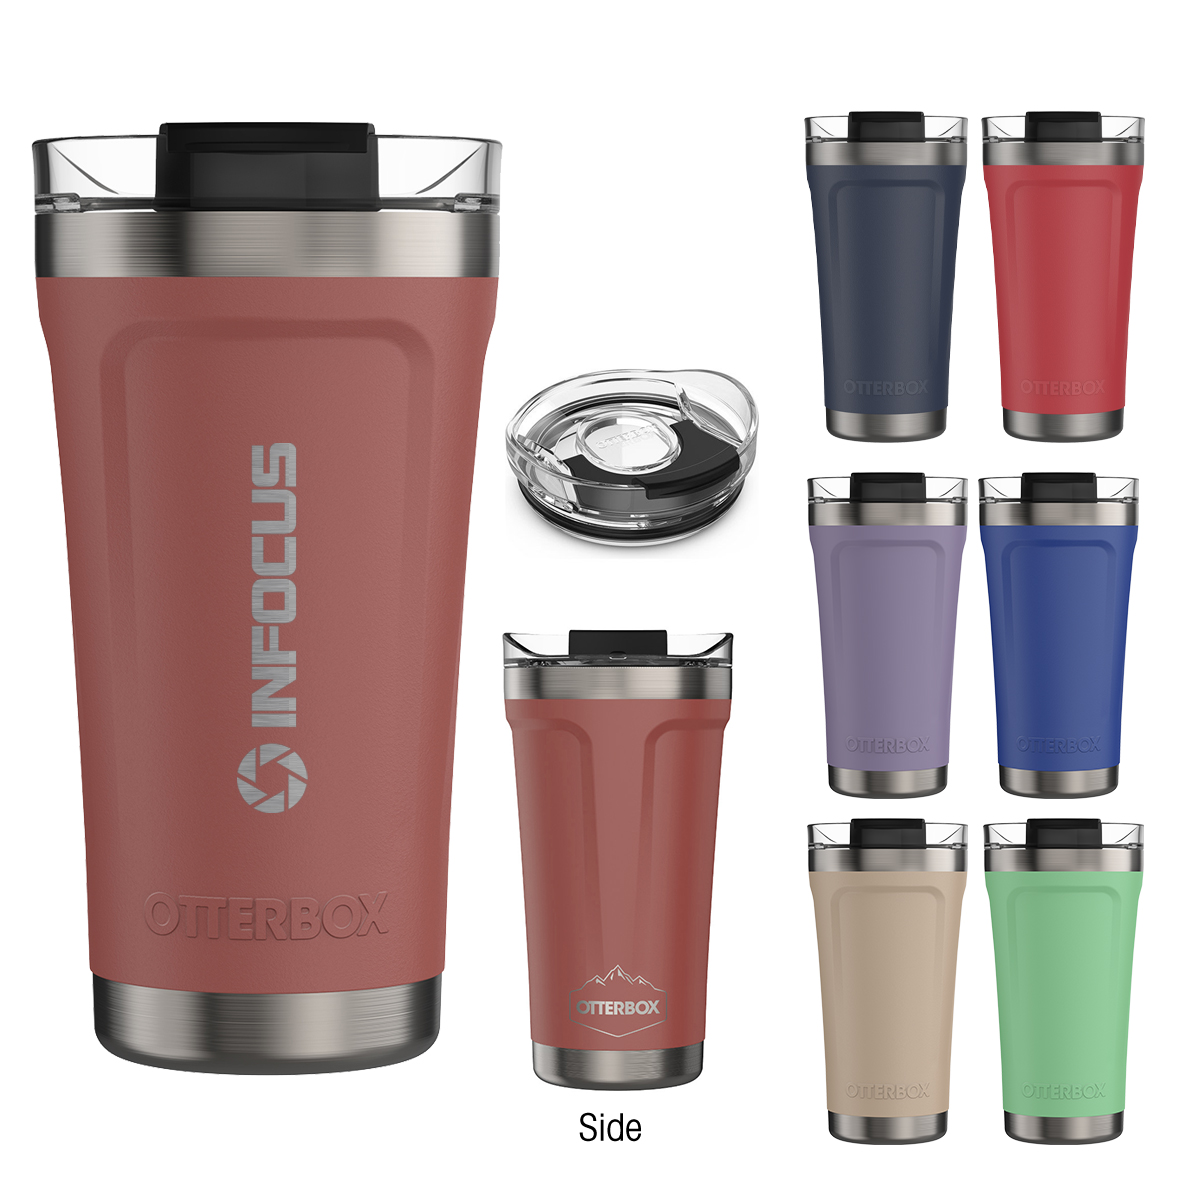 745937941-816 - 16 Oz. Otterbox® Elevation® Stainless Steel Tumbler - thumbnail